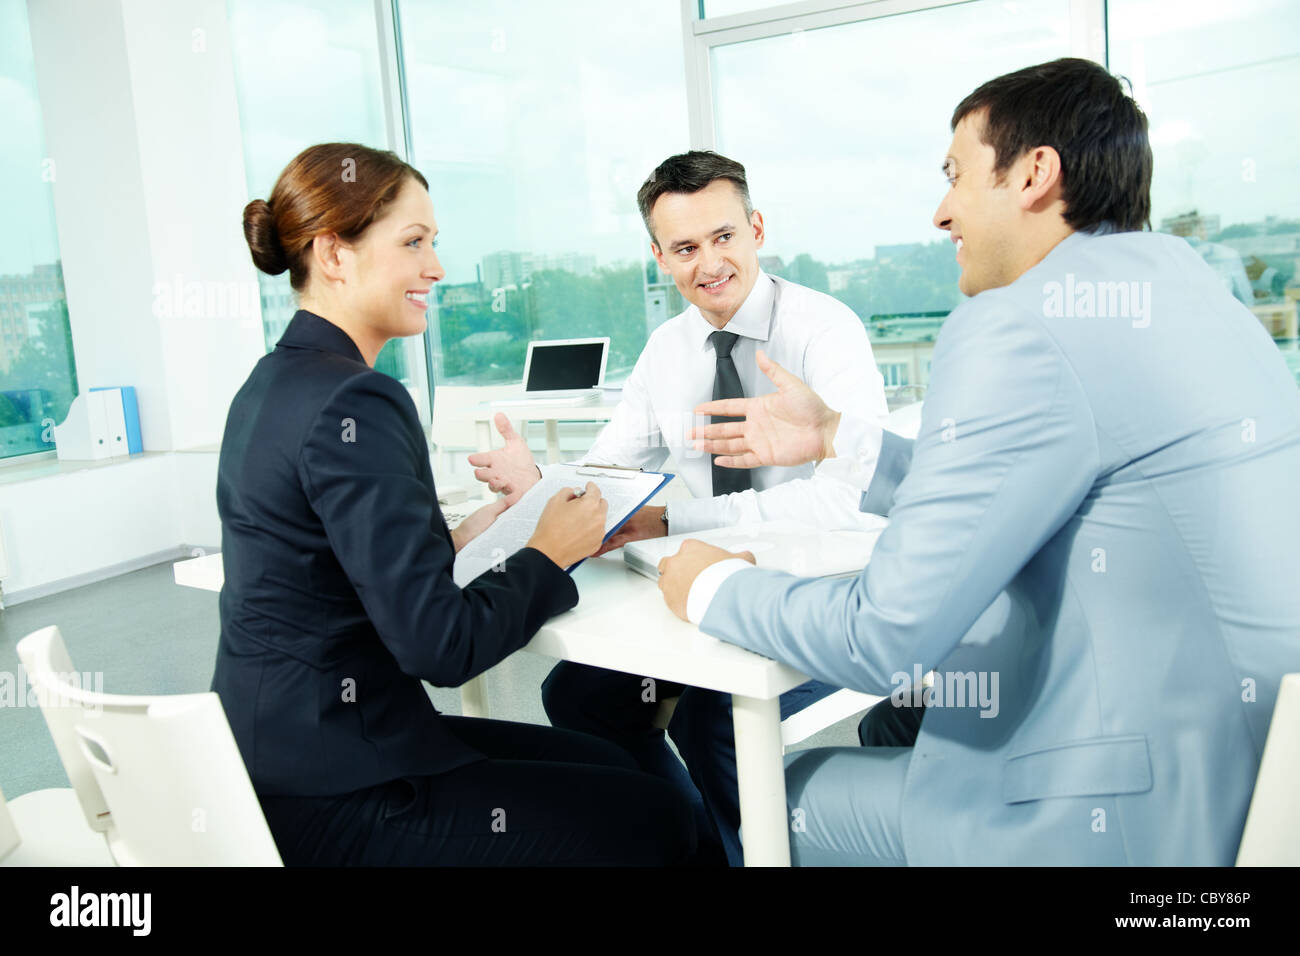 Portrait of friendly professionals planning work in office - Stock Image